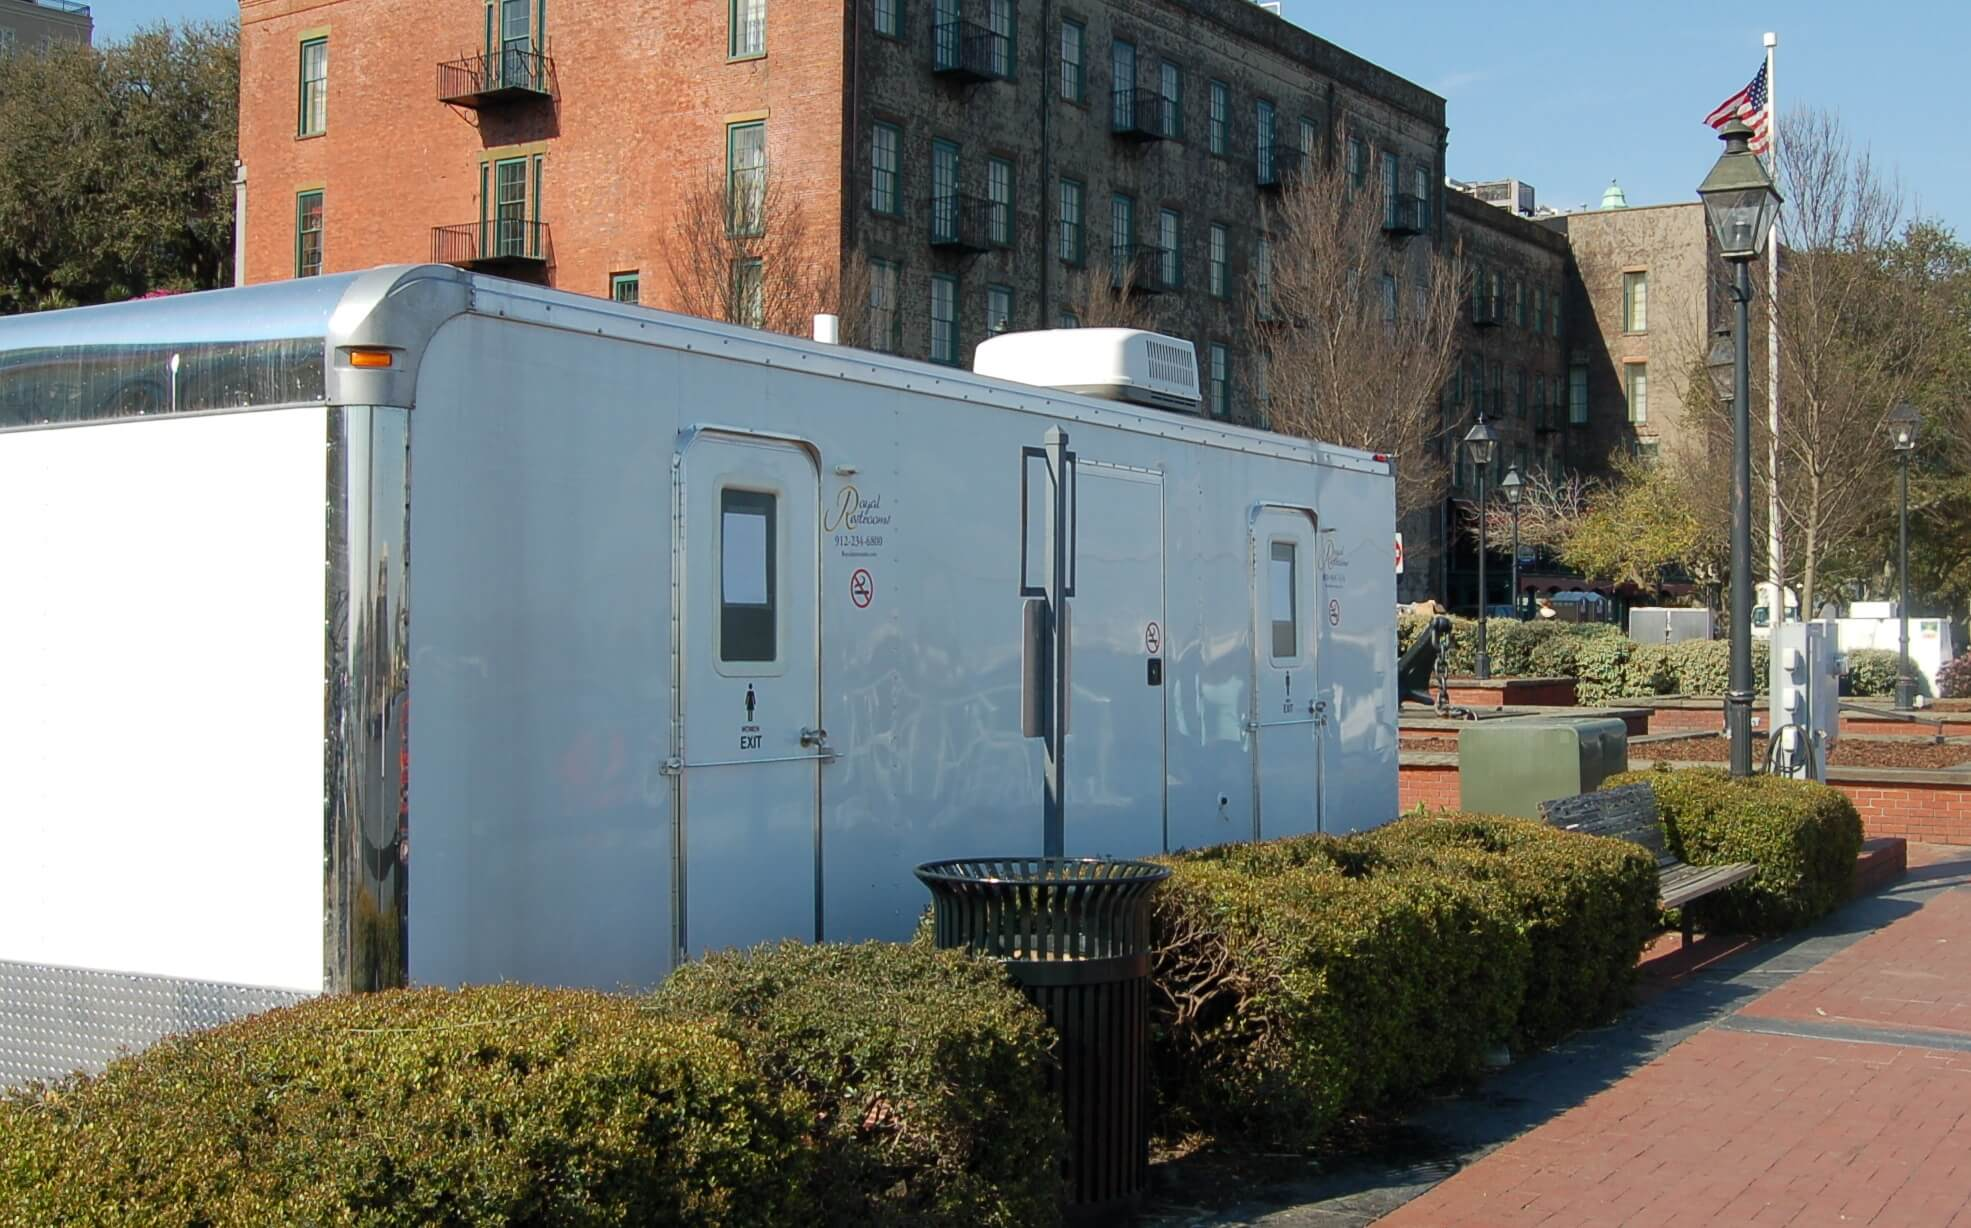 Ten Stall Portable Restroom on River Street